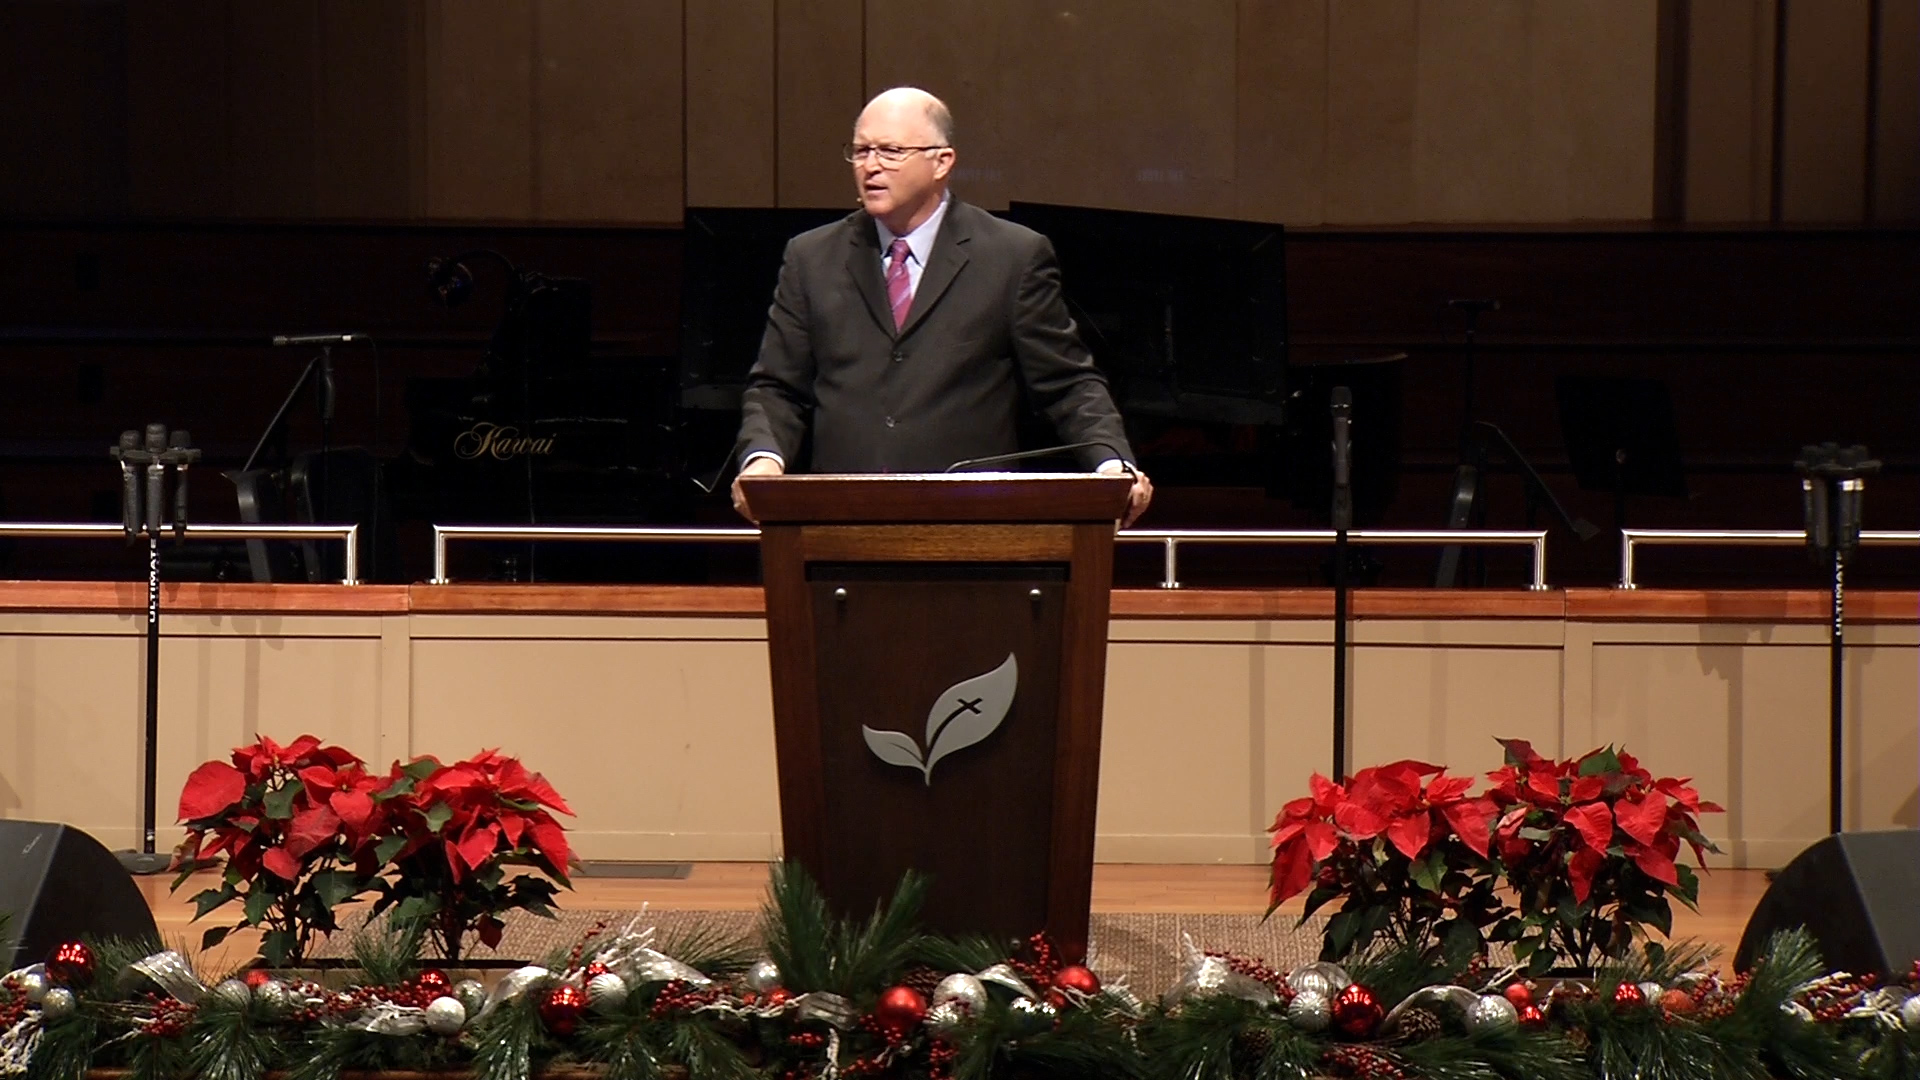 Pastor Paul Chappell: A Devoted Servant